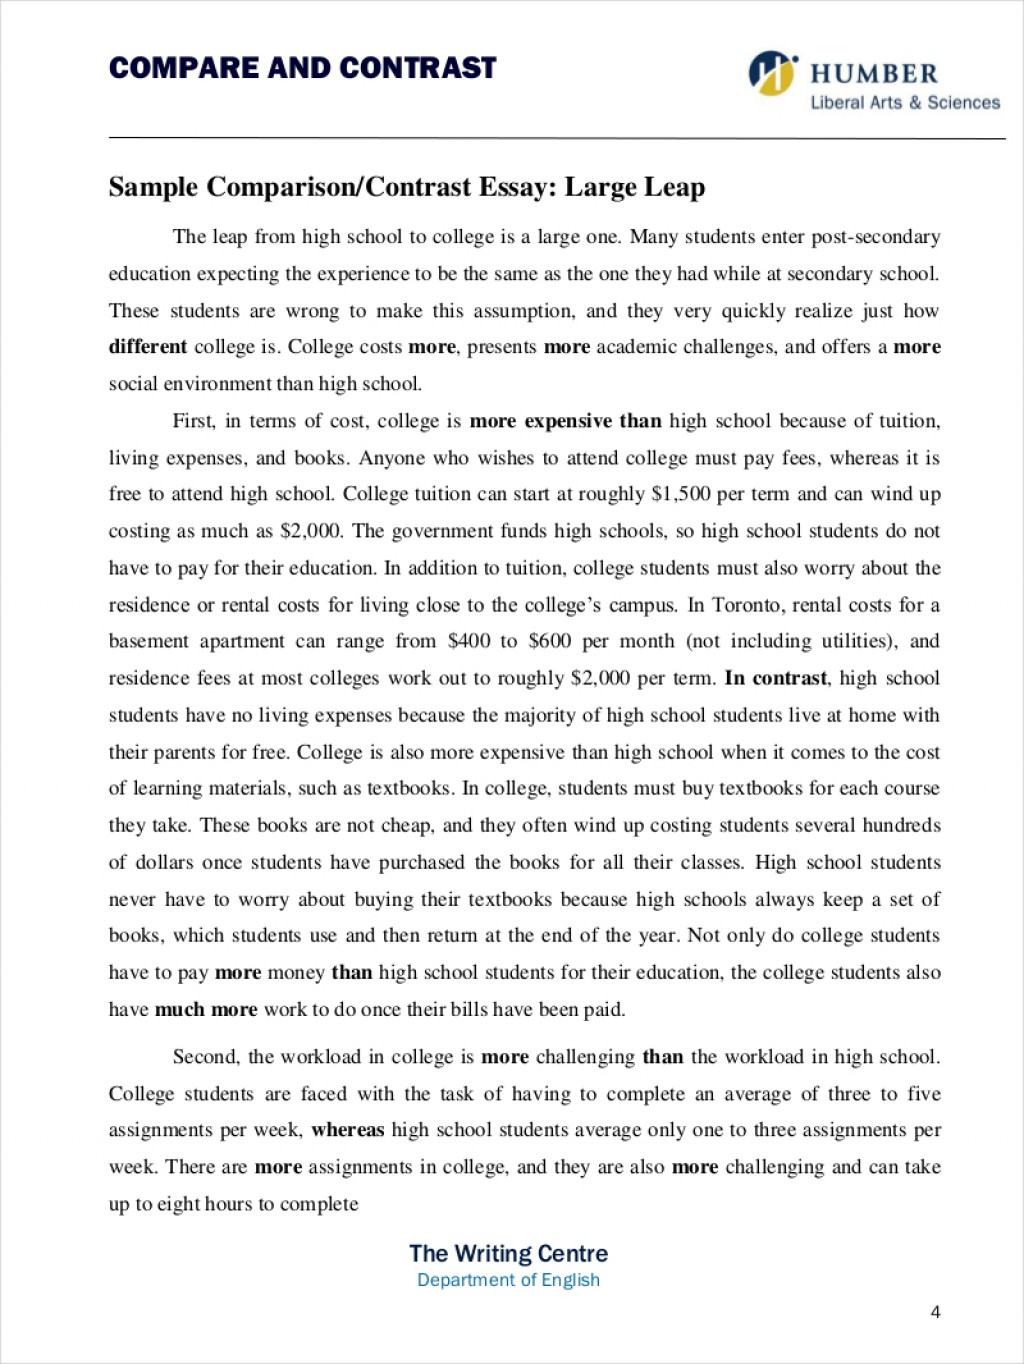 006 Compare And Contrast Essay Examples Comparative Samples Free Pdf Format Download Throughout Comparison Thesis Coles Thecolossus Co Within Ex 5th Grade 4th 6th 3rd Magnificent Topics Large